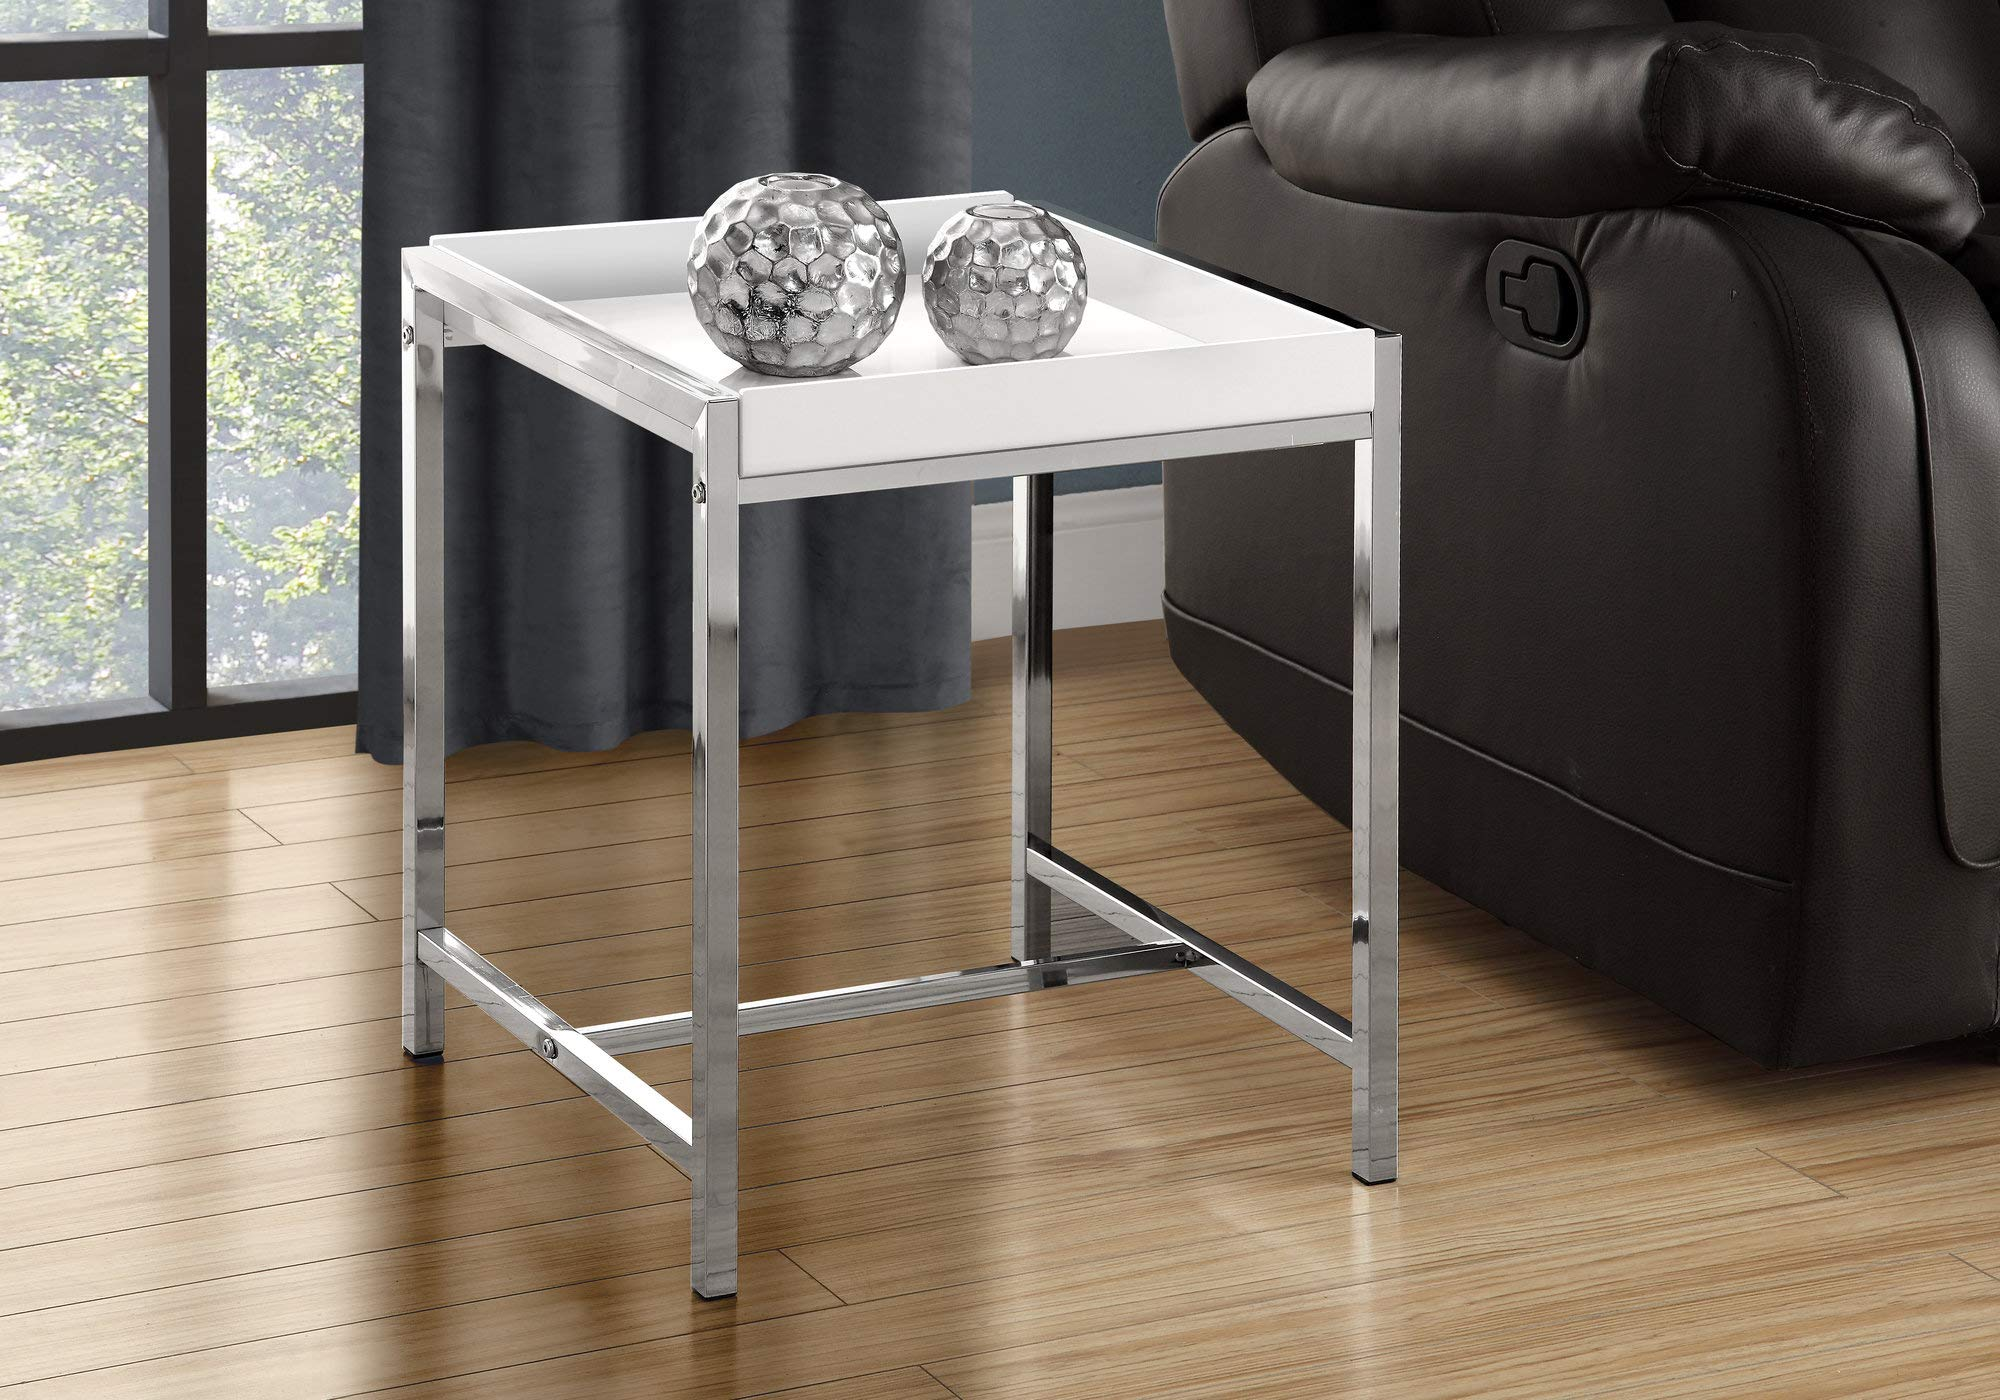 Monarch I 3050 Metal Accent Table, White Acrylic/Chrome by Monarch Specialties (Image #5)